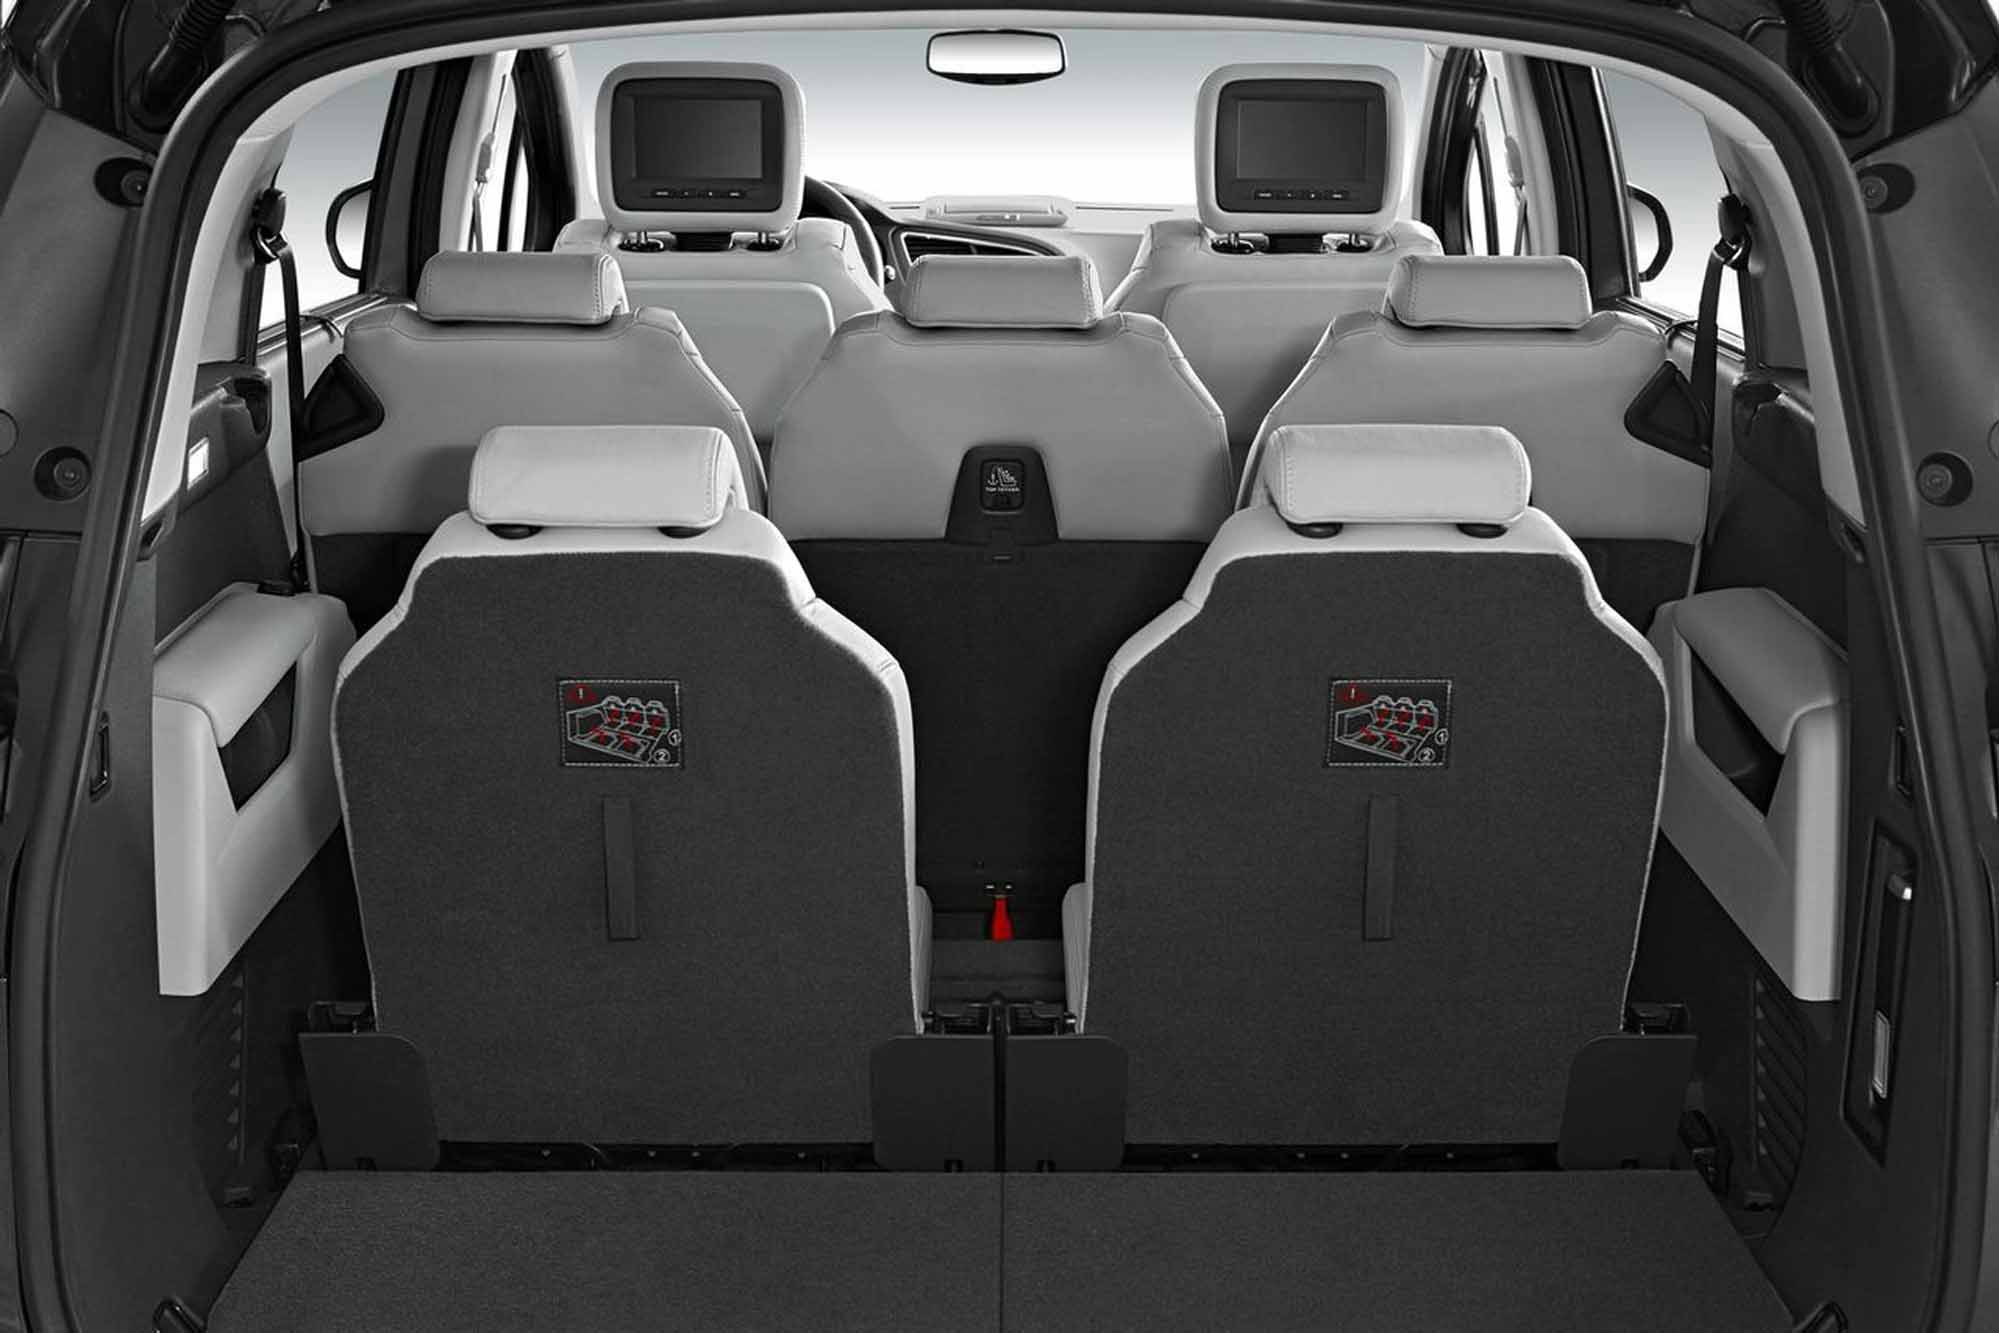 essai peugeot 5008 peugeot se met au monospace compact essais sur. Black Bedroom Furniture Sets. Home Design Ideas